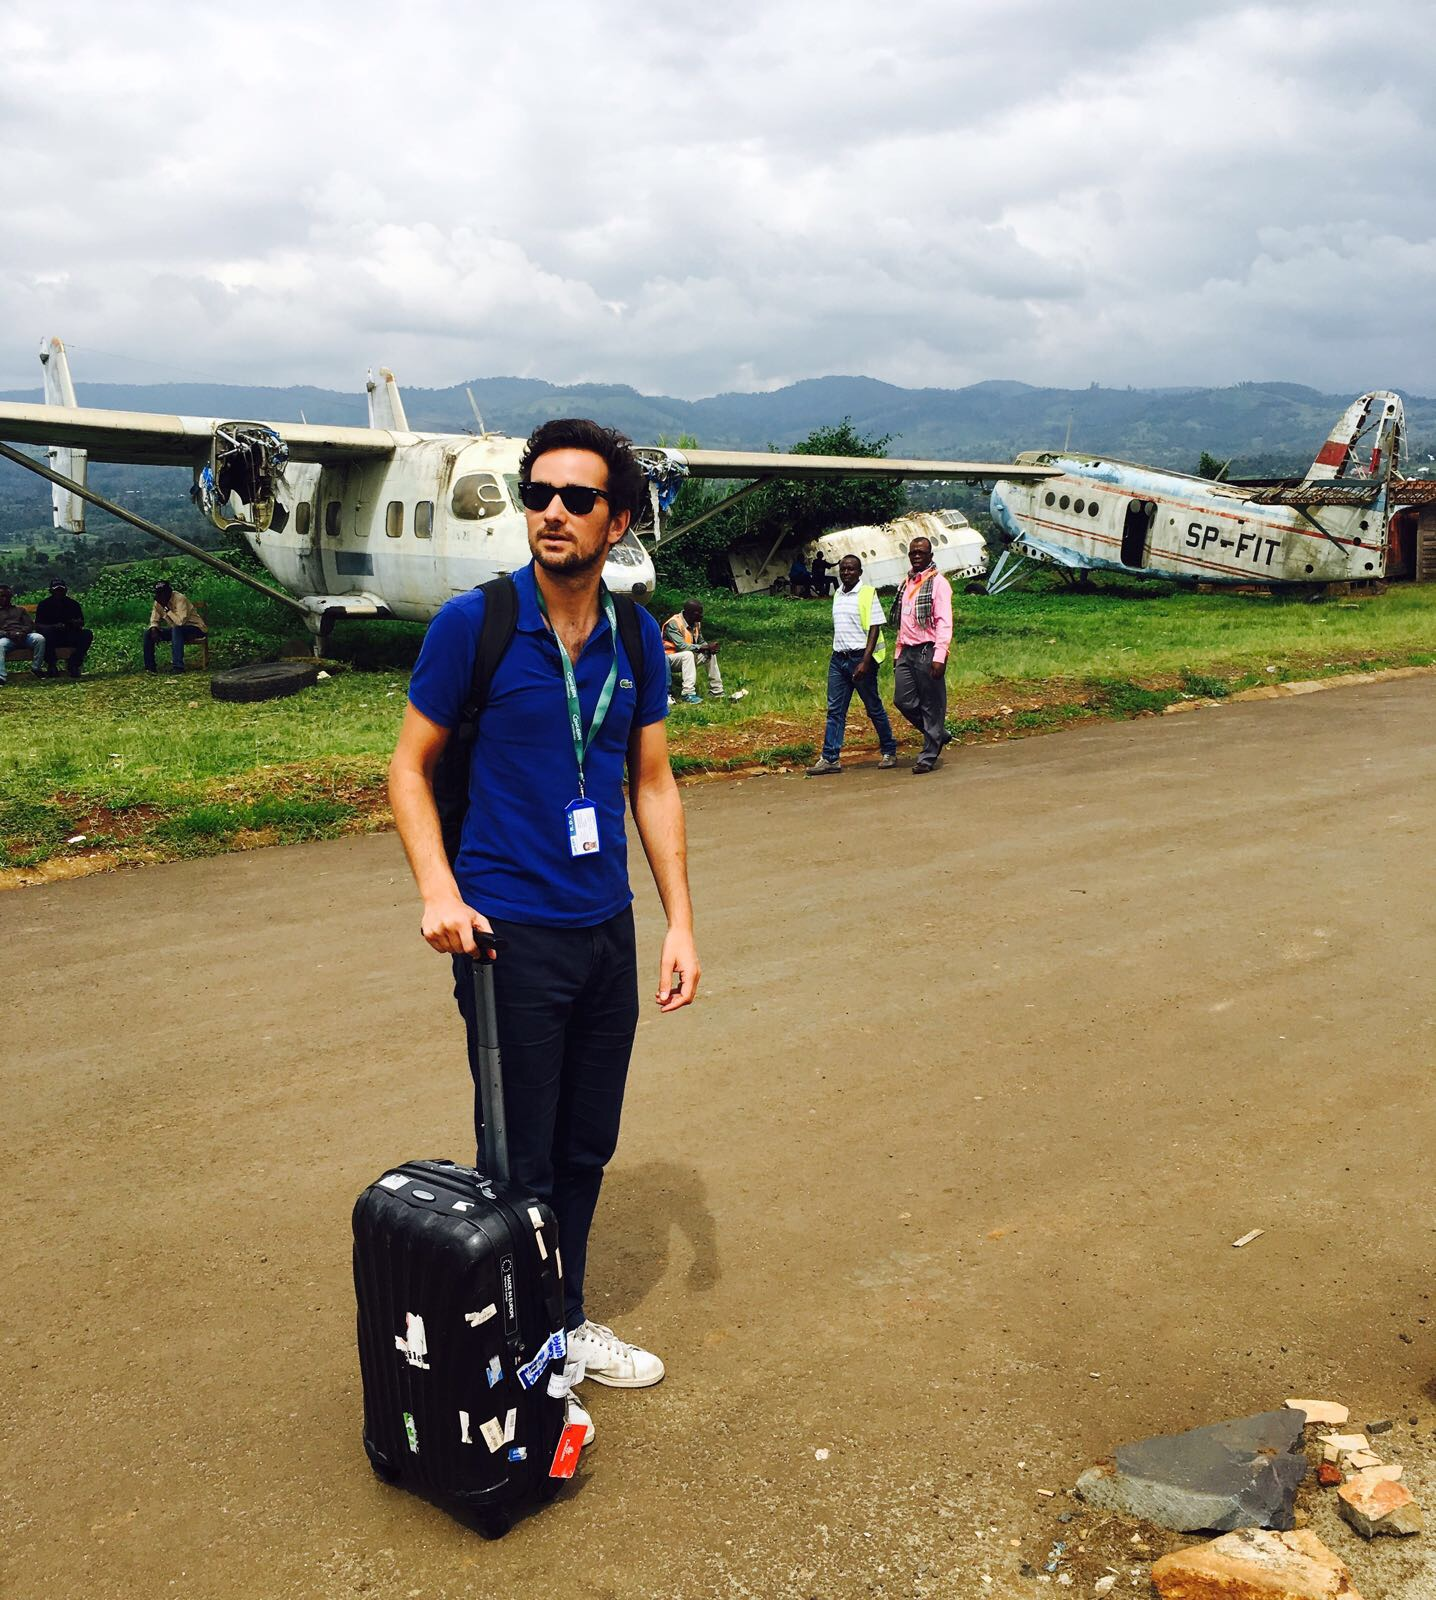 Concern CD stands on dirt airstrip in DRC, with broken planes in the background.